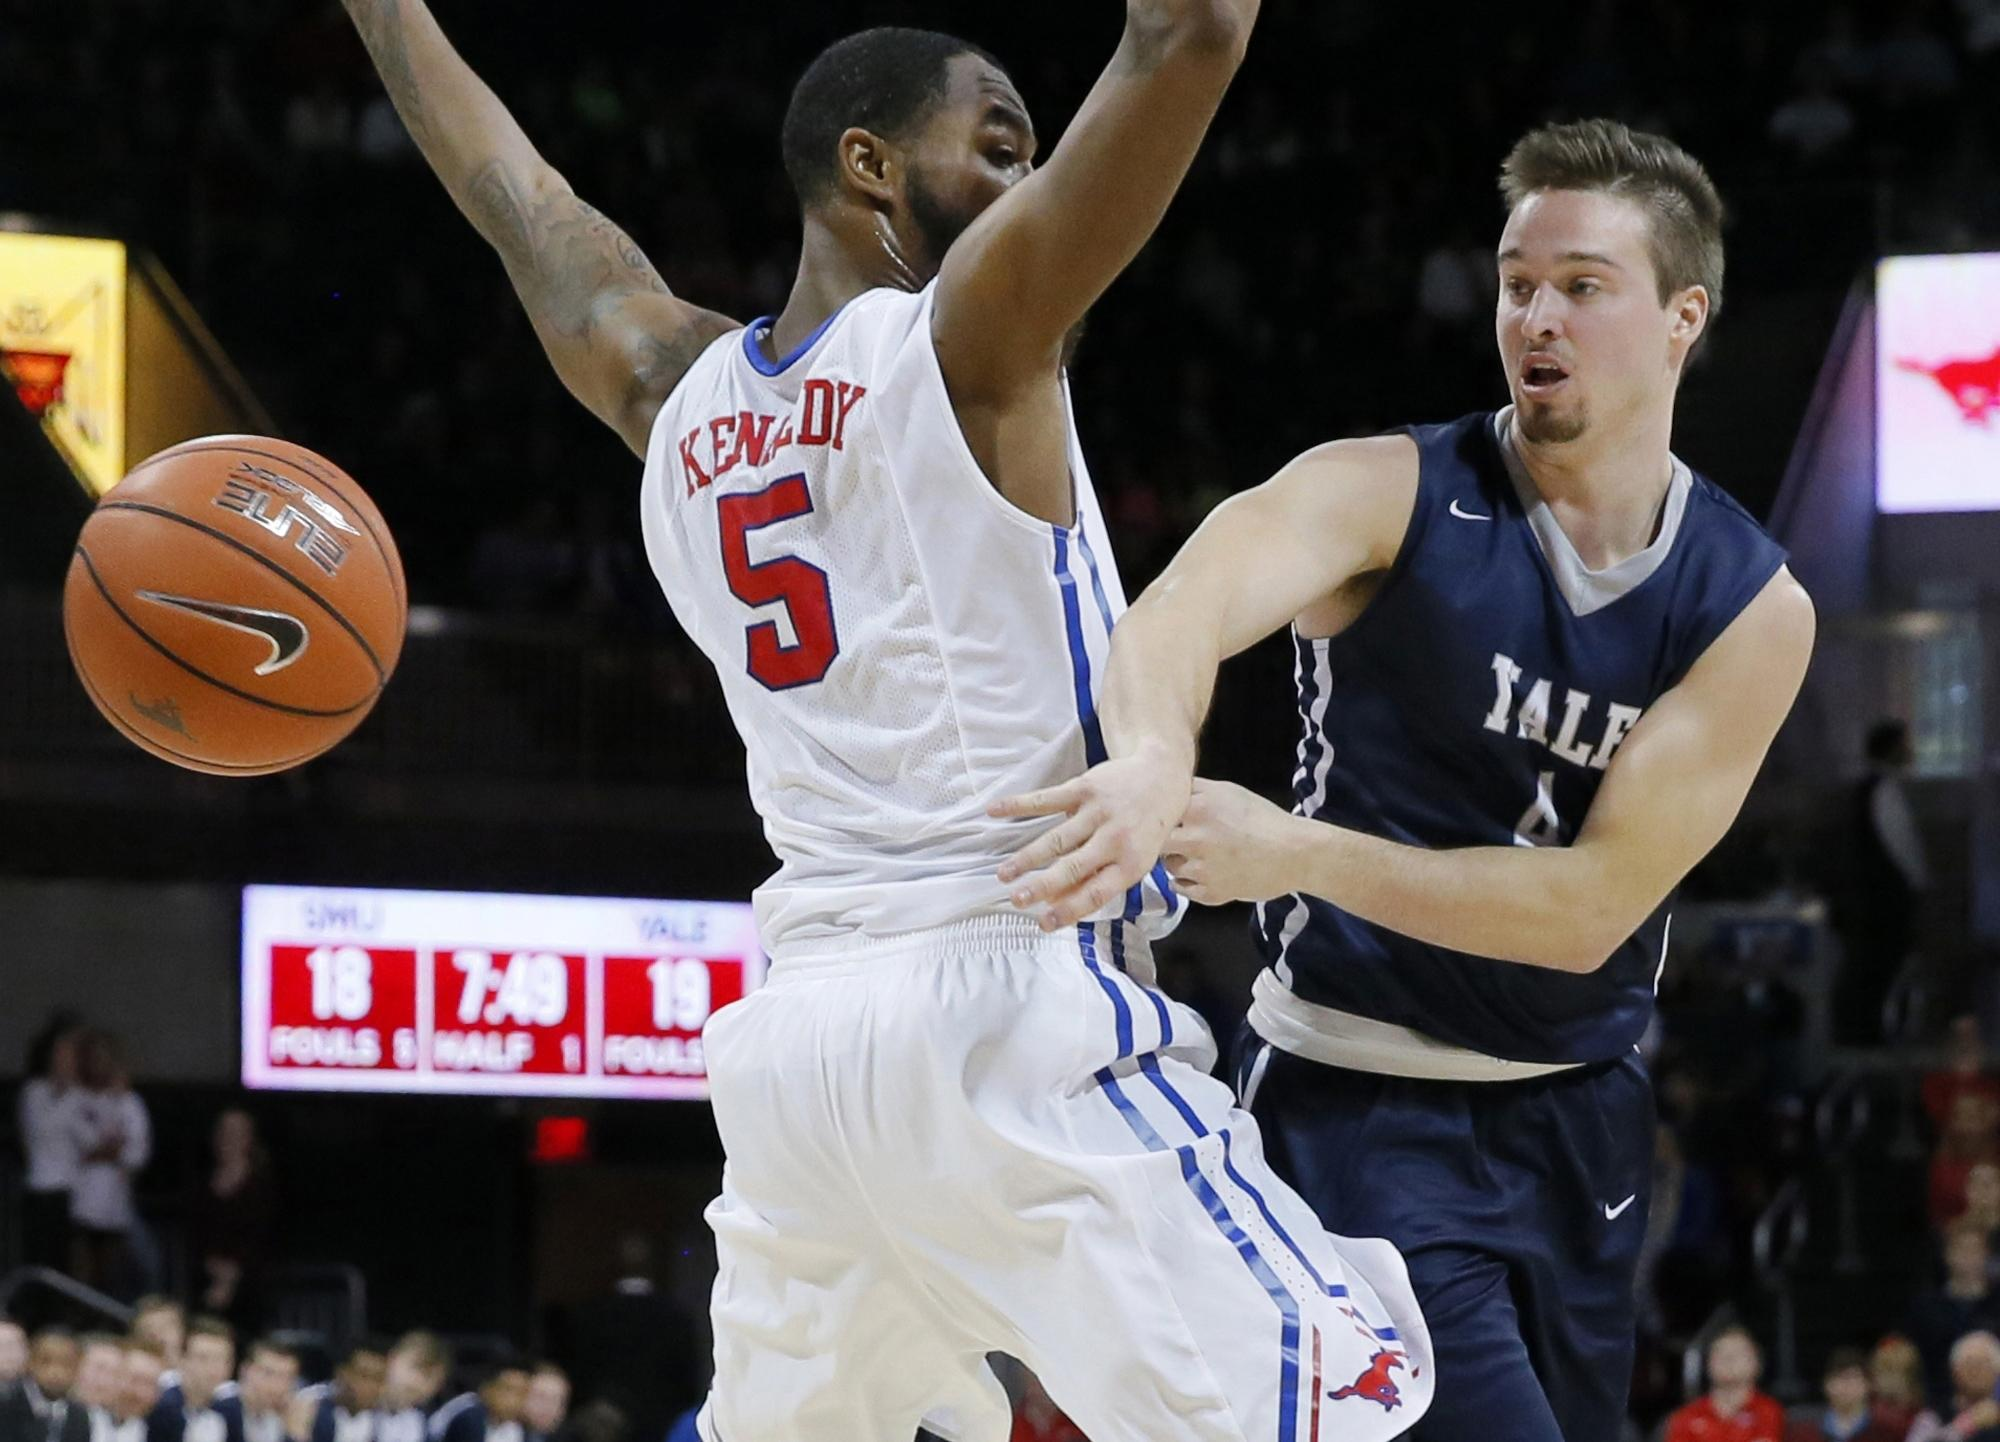 In this Nov. 22, 2015 file photo, Yale's Jack Montague, right,